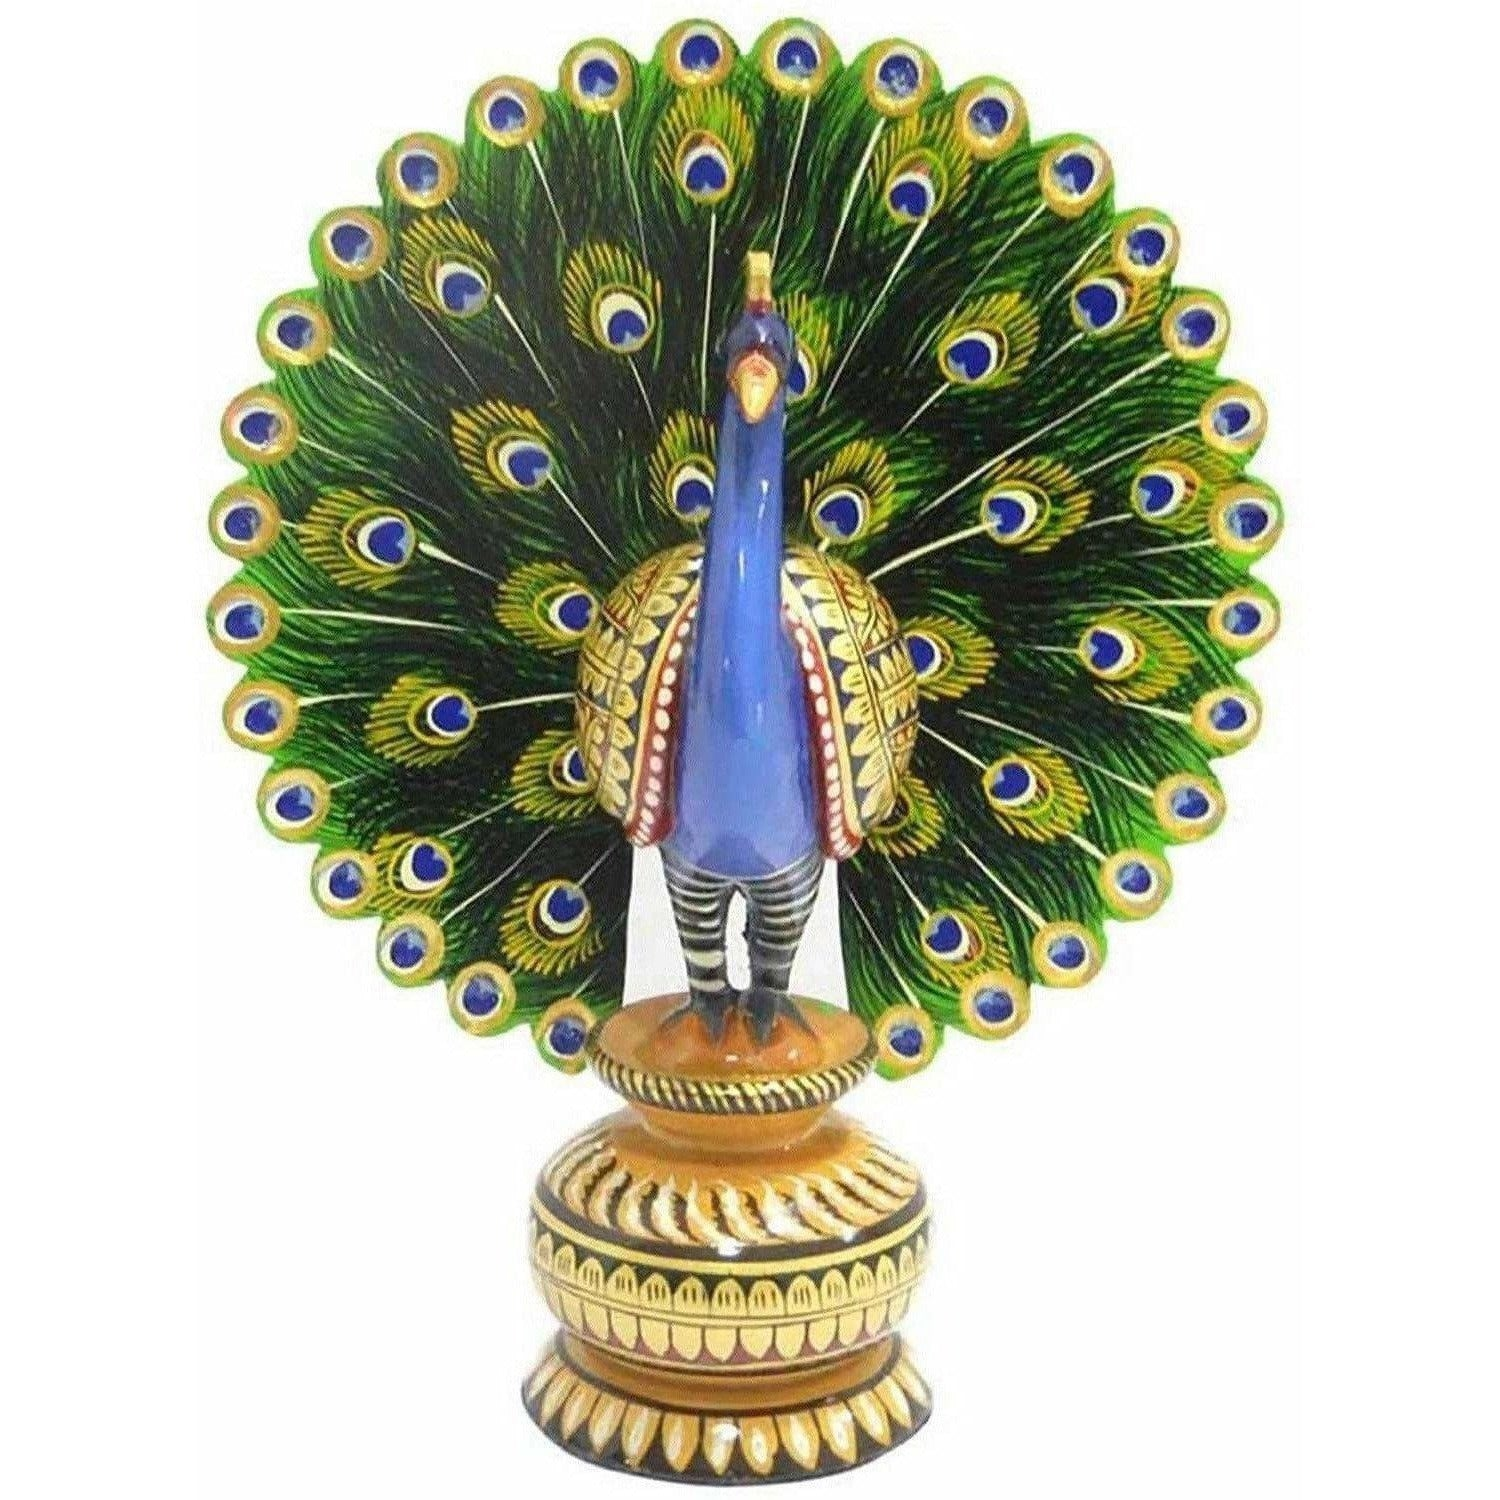 Decorative Wooden Dancing Colorful Peacock